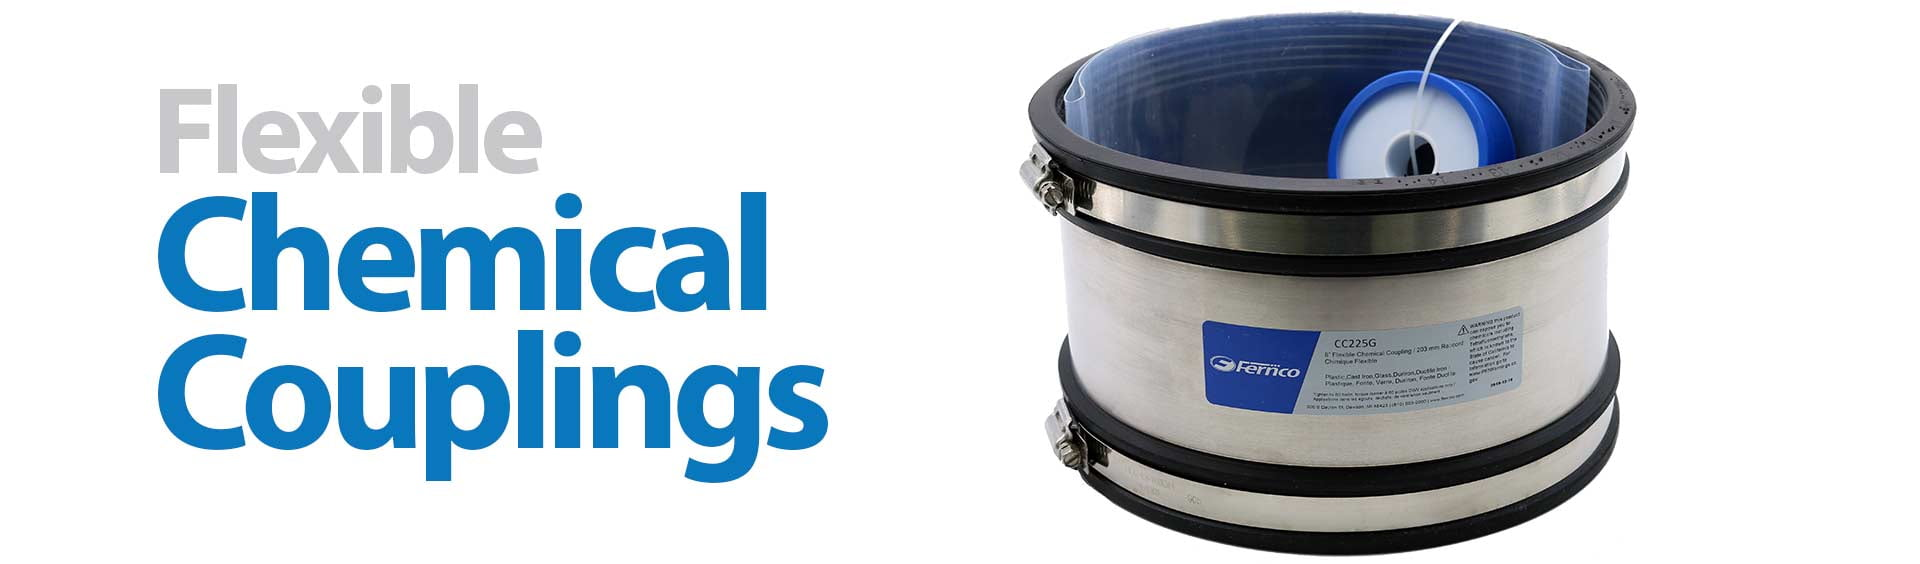 Fernco Flexible Chemical Couplings